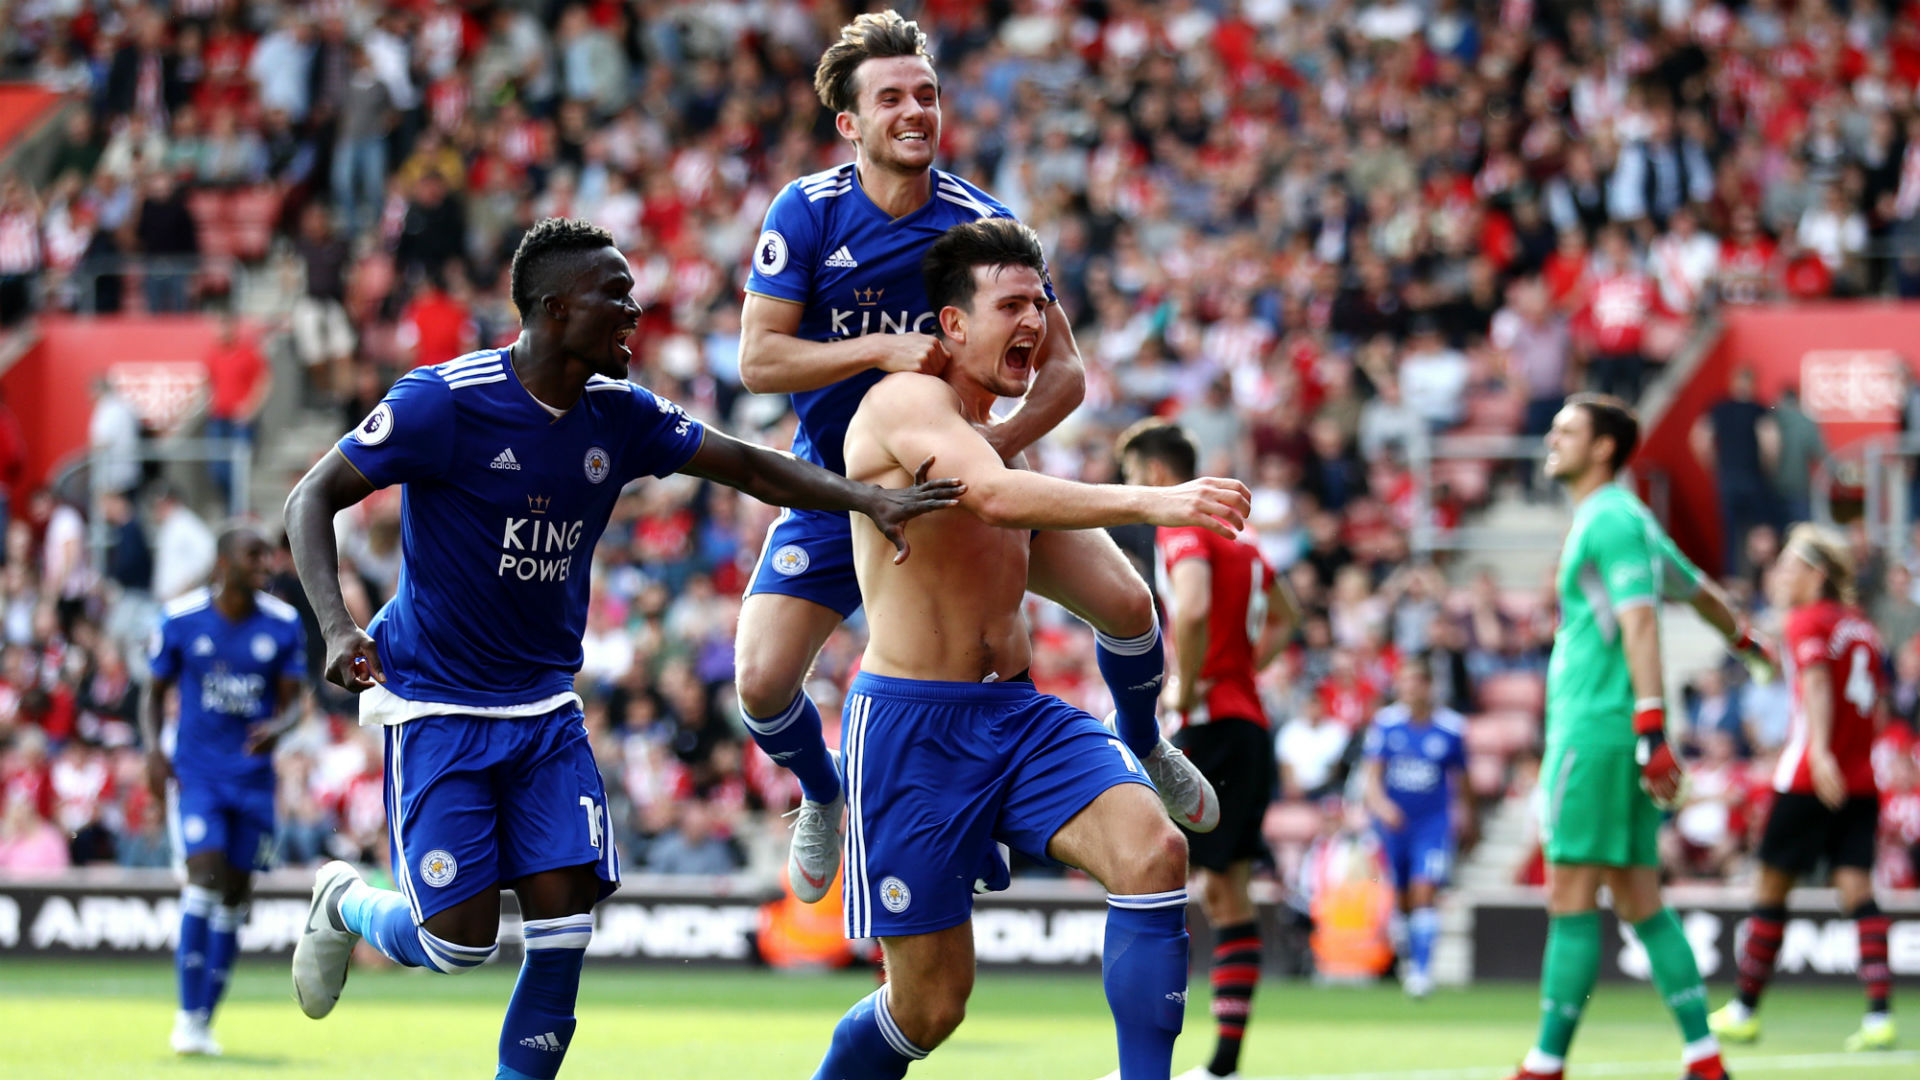 Southampton 2-1 Leicester City: Three match takeaways